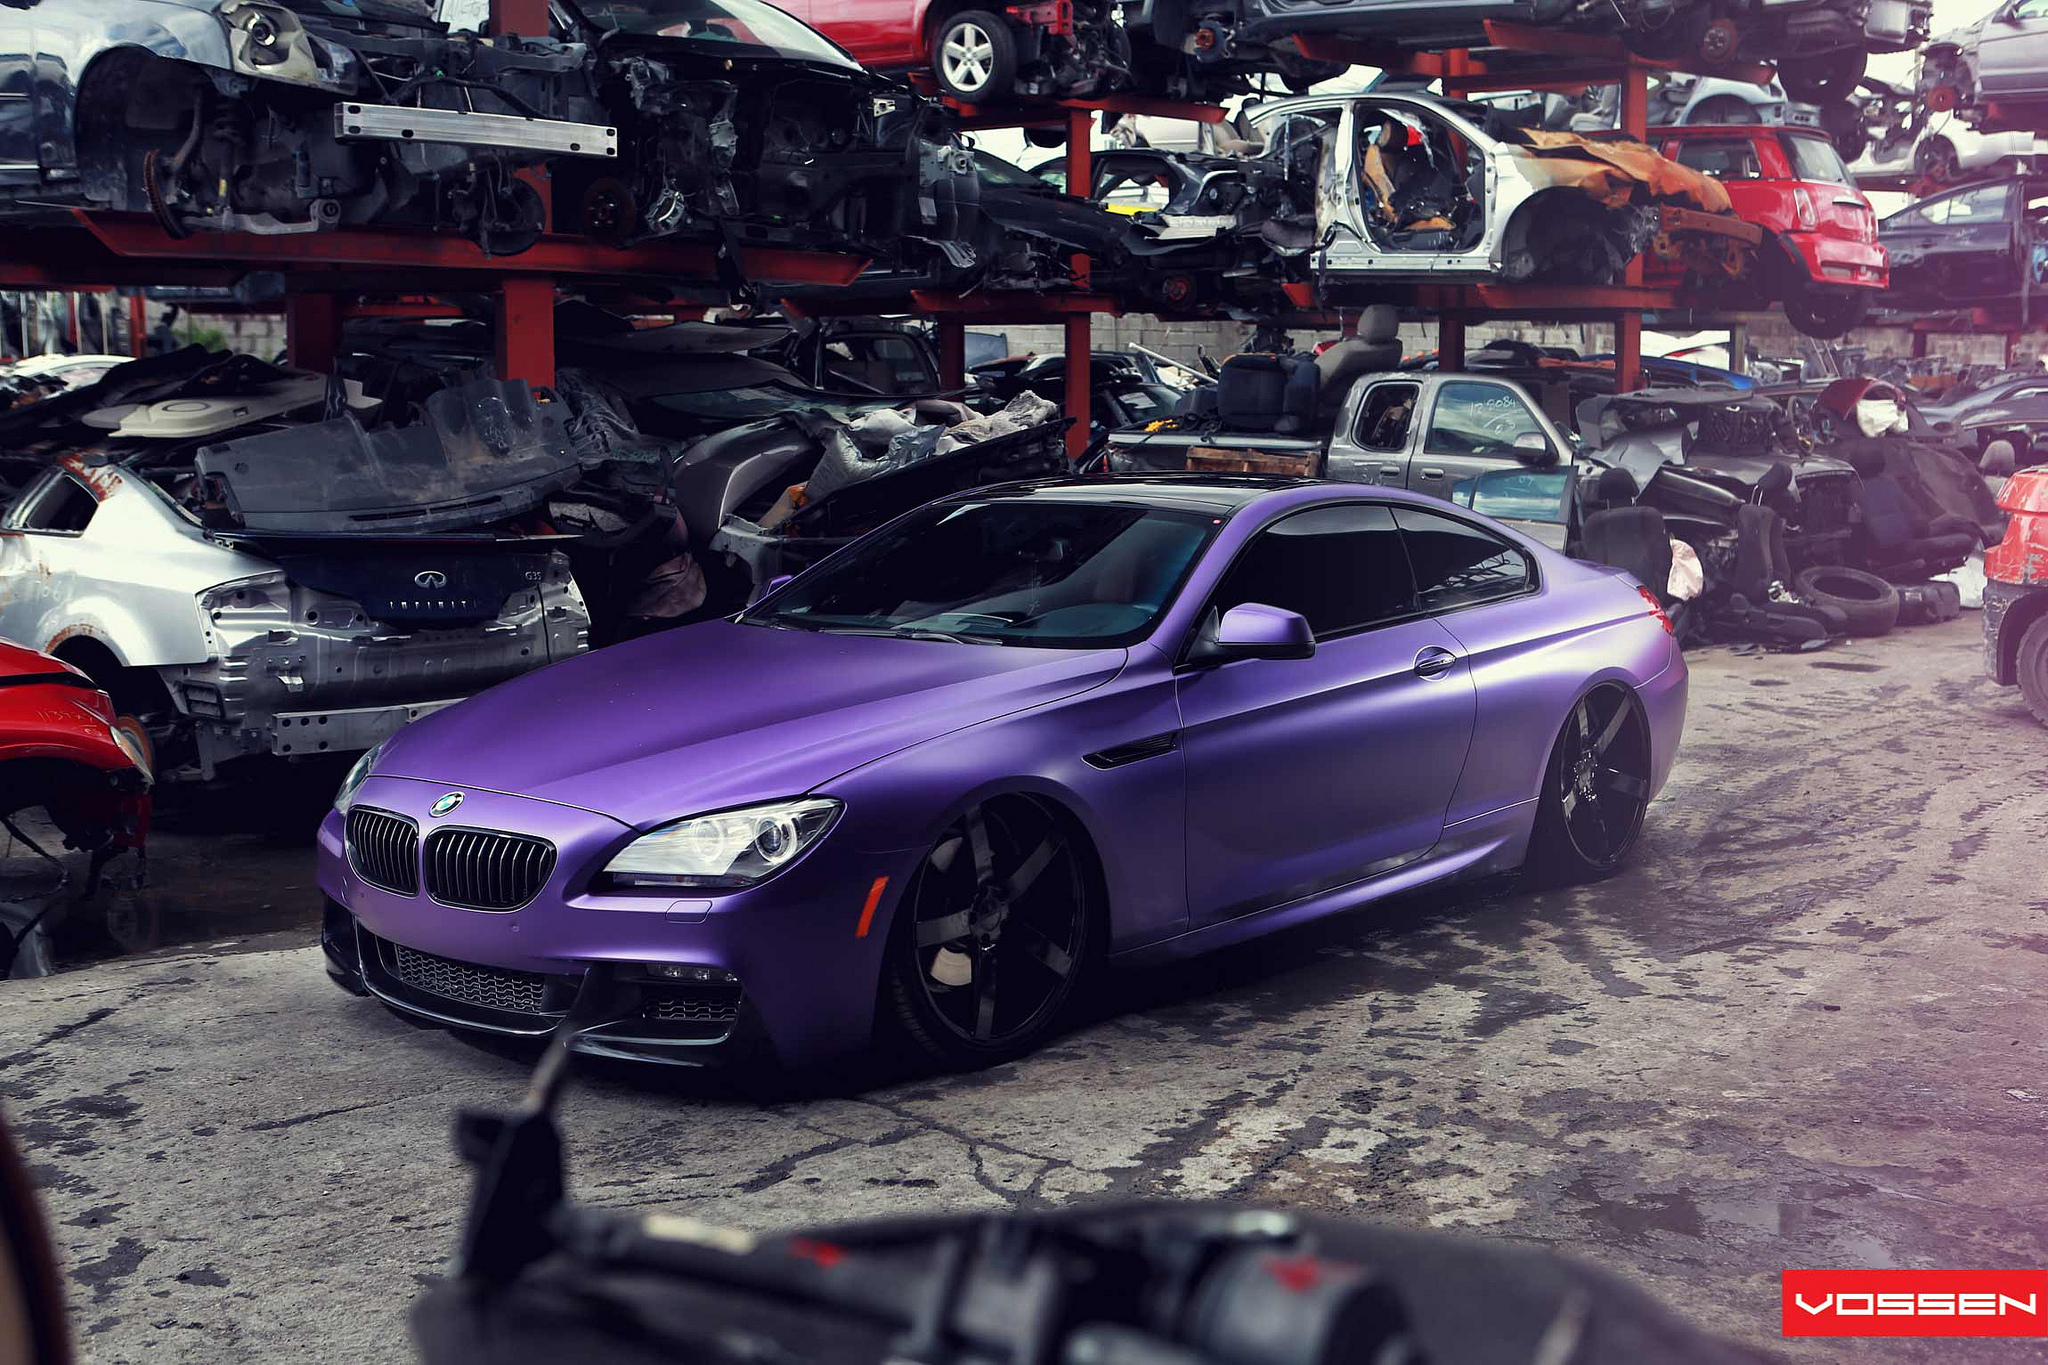 Frozen Purple Bmw Series Coupe Does Photo Shoot In Scrapyard Photo Gallery